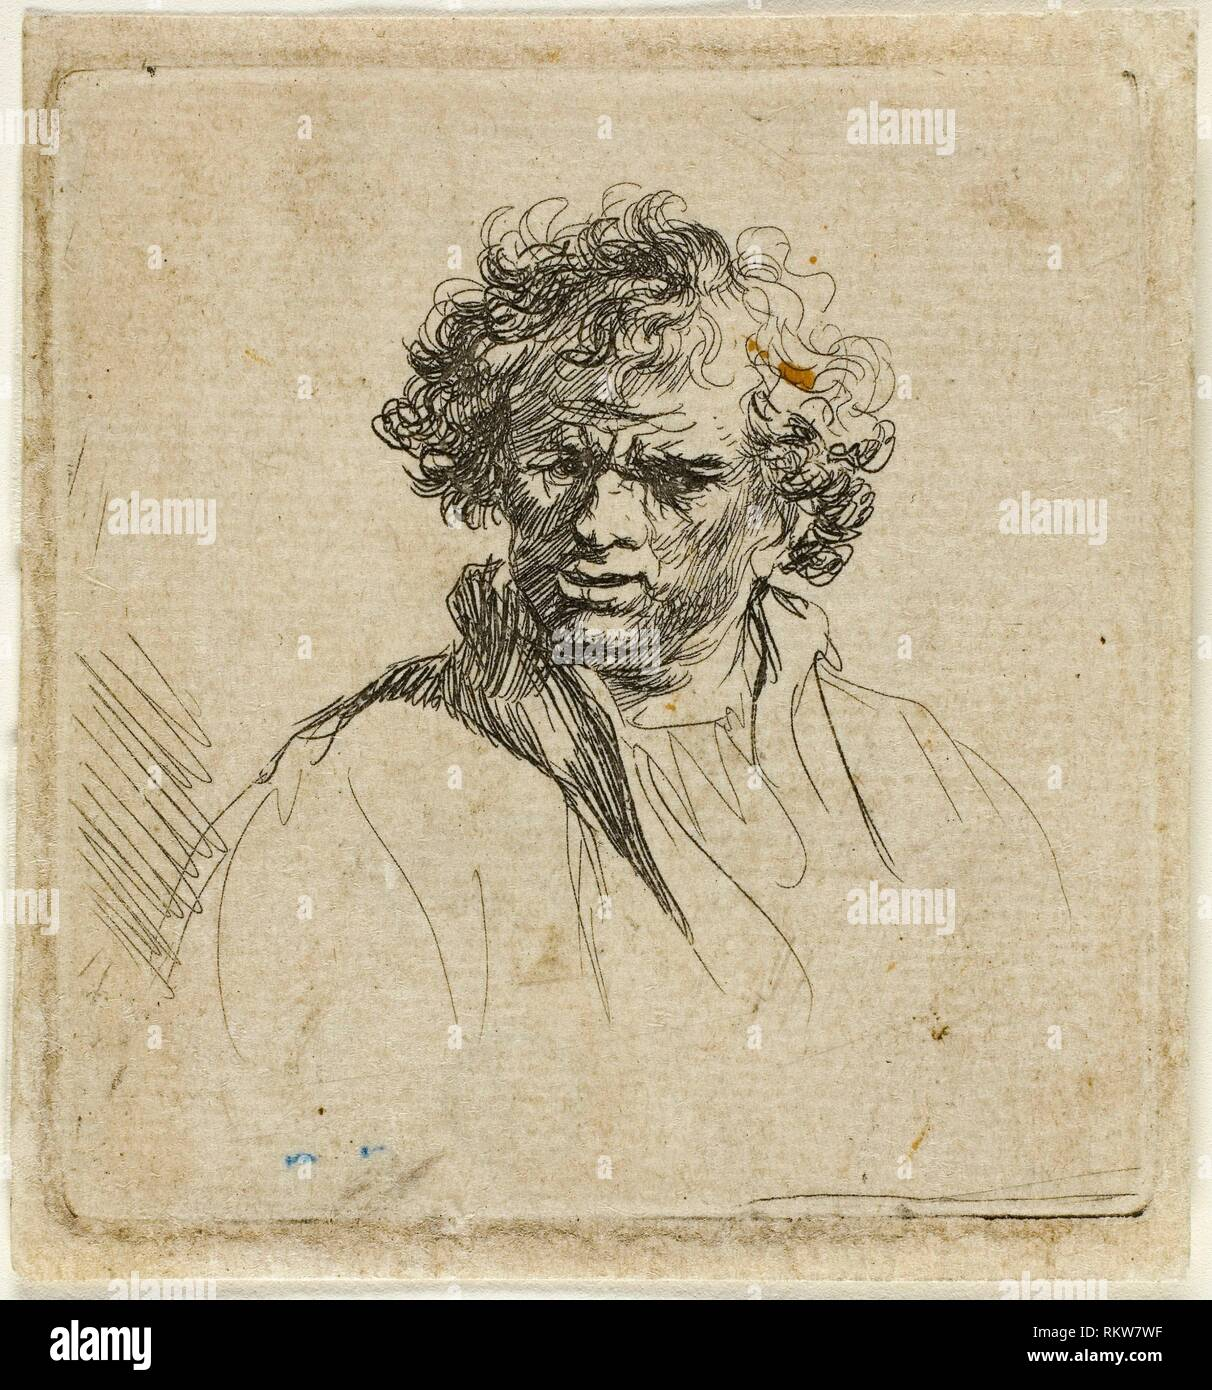 Curly Headed Man with a Wry Mouth - 1630/80 - Possibly Ferdinand Bol (Dutch, 1616-1680) In the manner of Rembrandt van Rijn (Dutch, 1606-1669) - - Stock Image